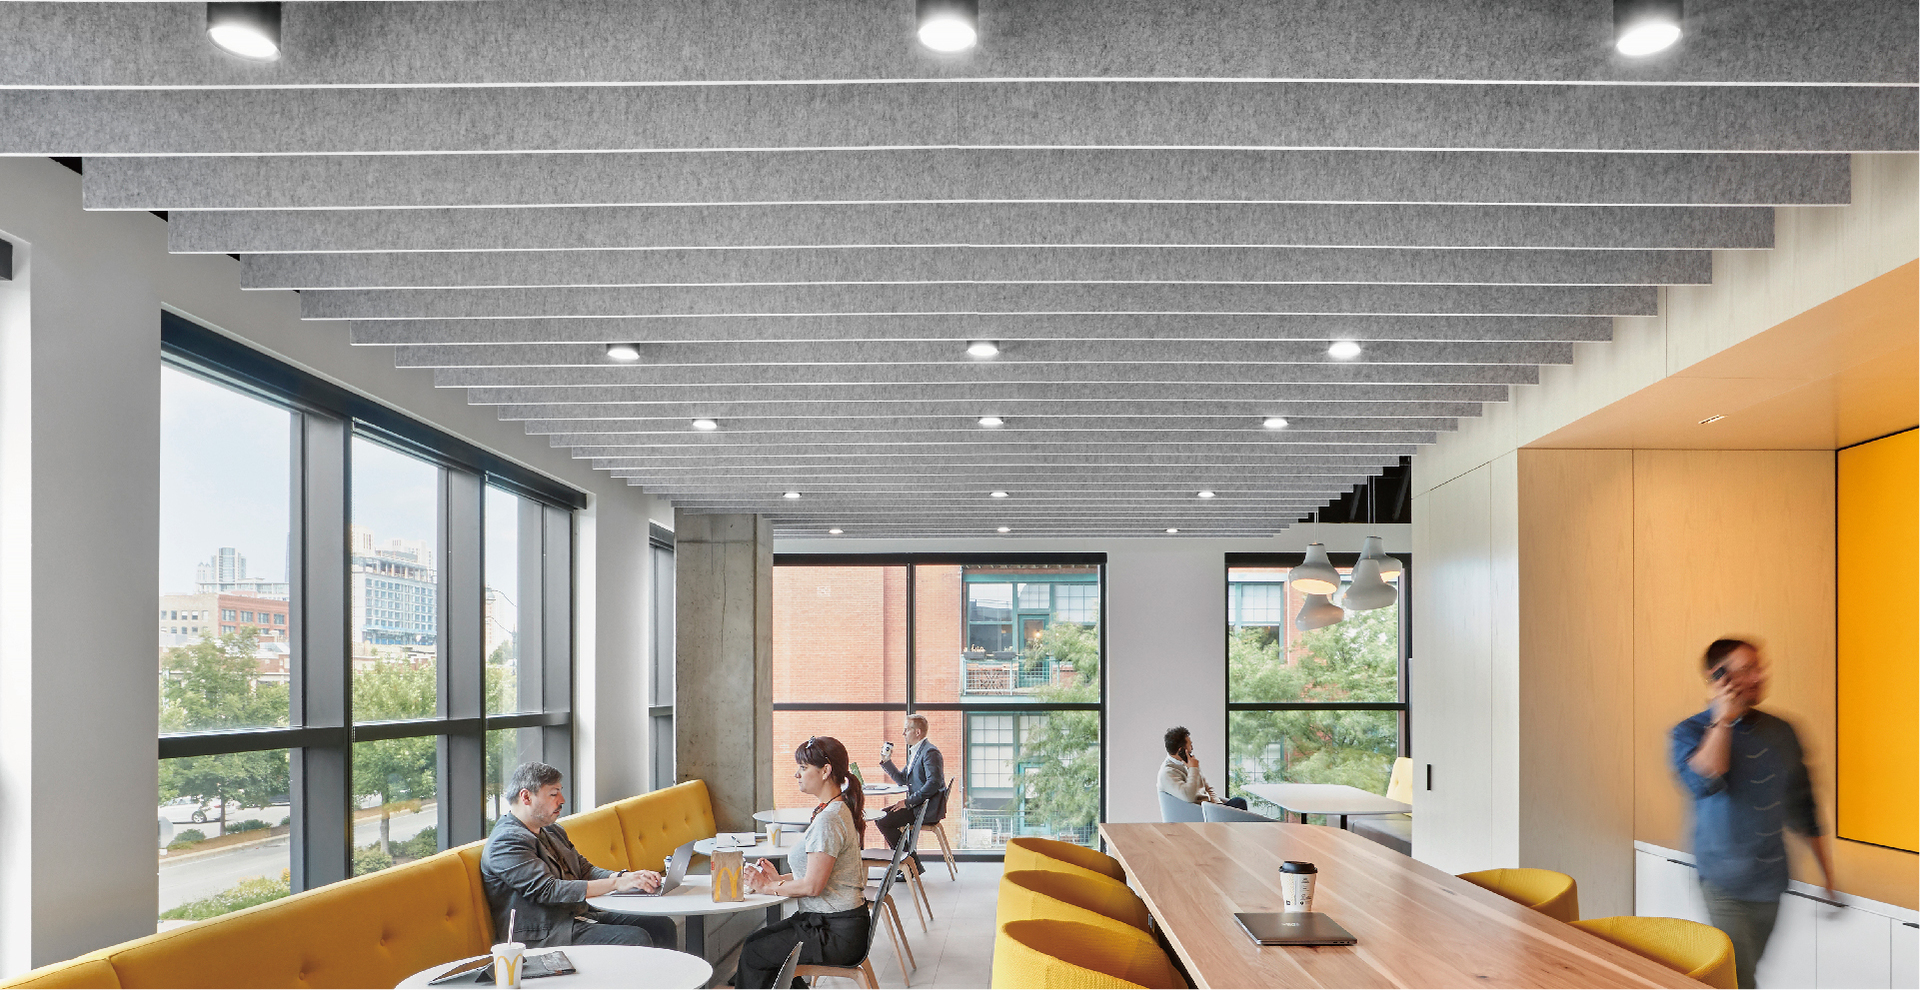 The luminous common area at McDonald's HQ in Chicago, Illinois, featuring Atria 4 architectural indoor luminaire by Meteor Lighting. Photos by Garrett Rowland